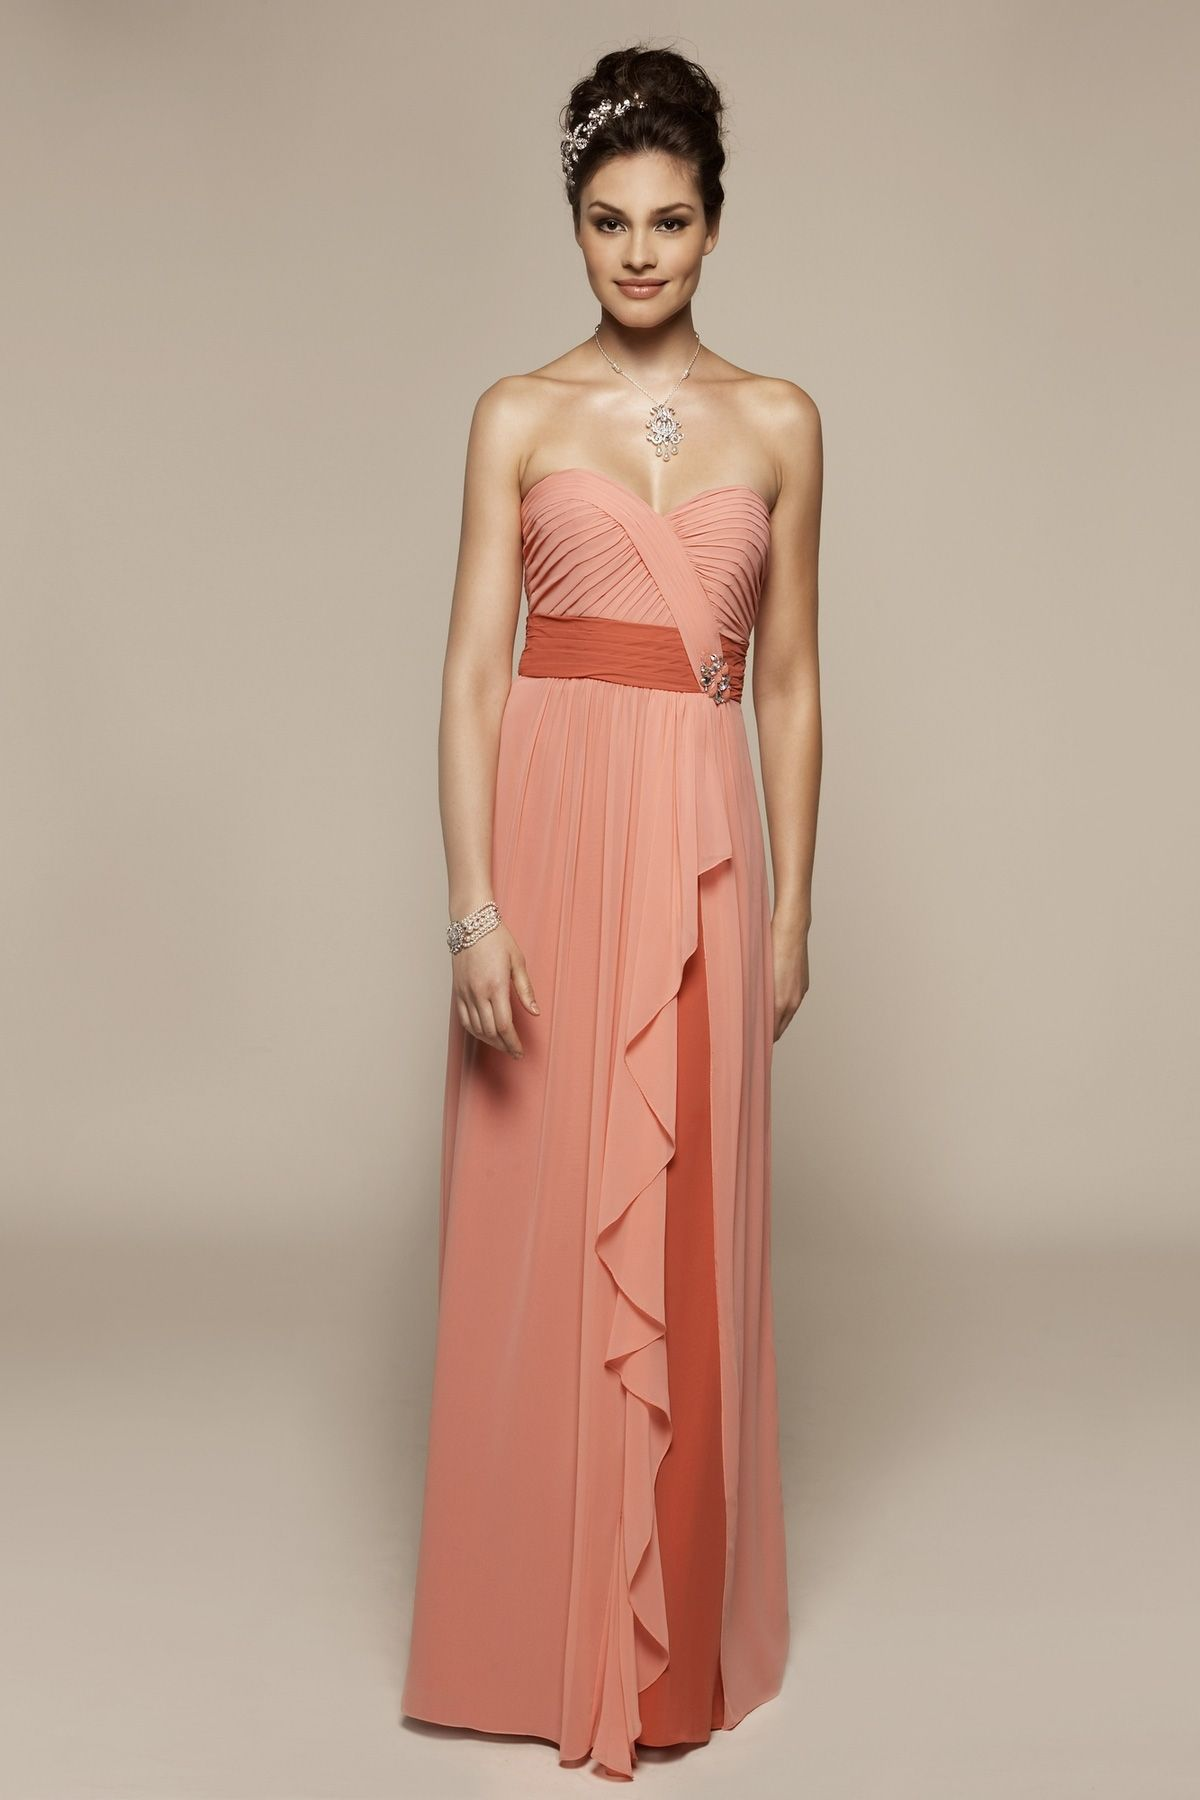 Bridesmaid Dresses Special Occasion Dresses Prom Dresses Style